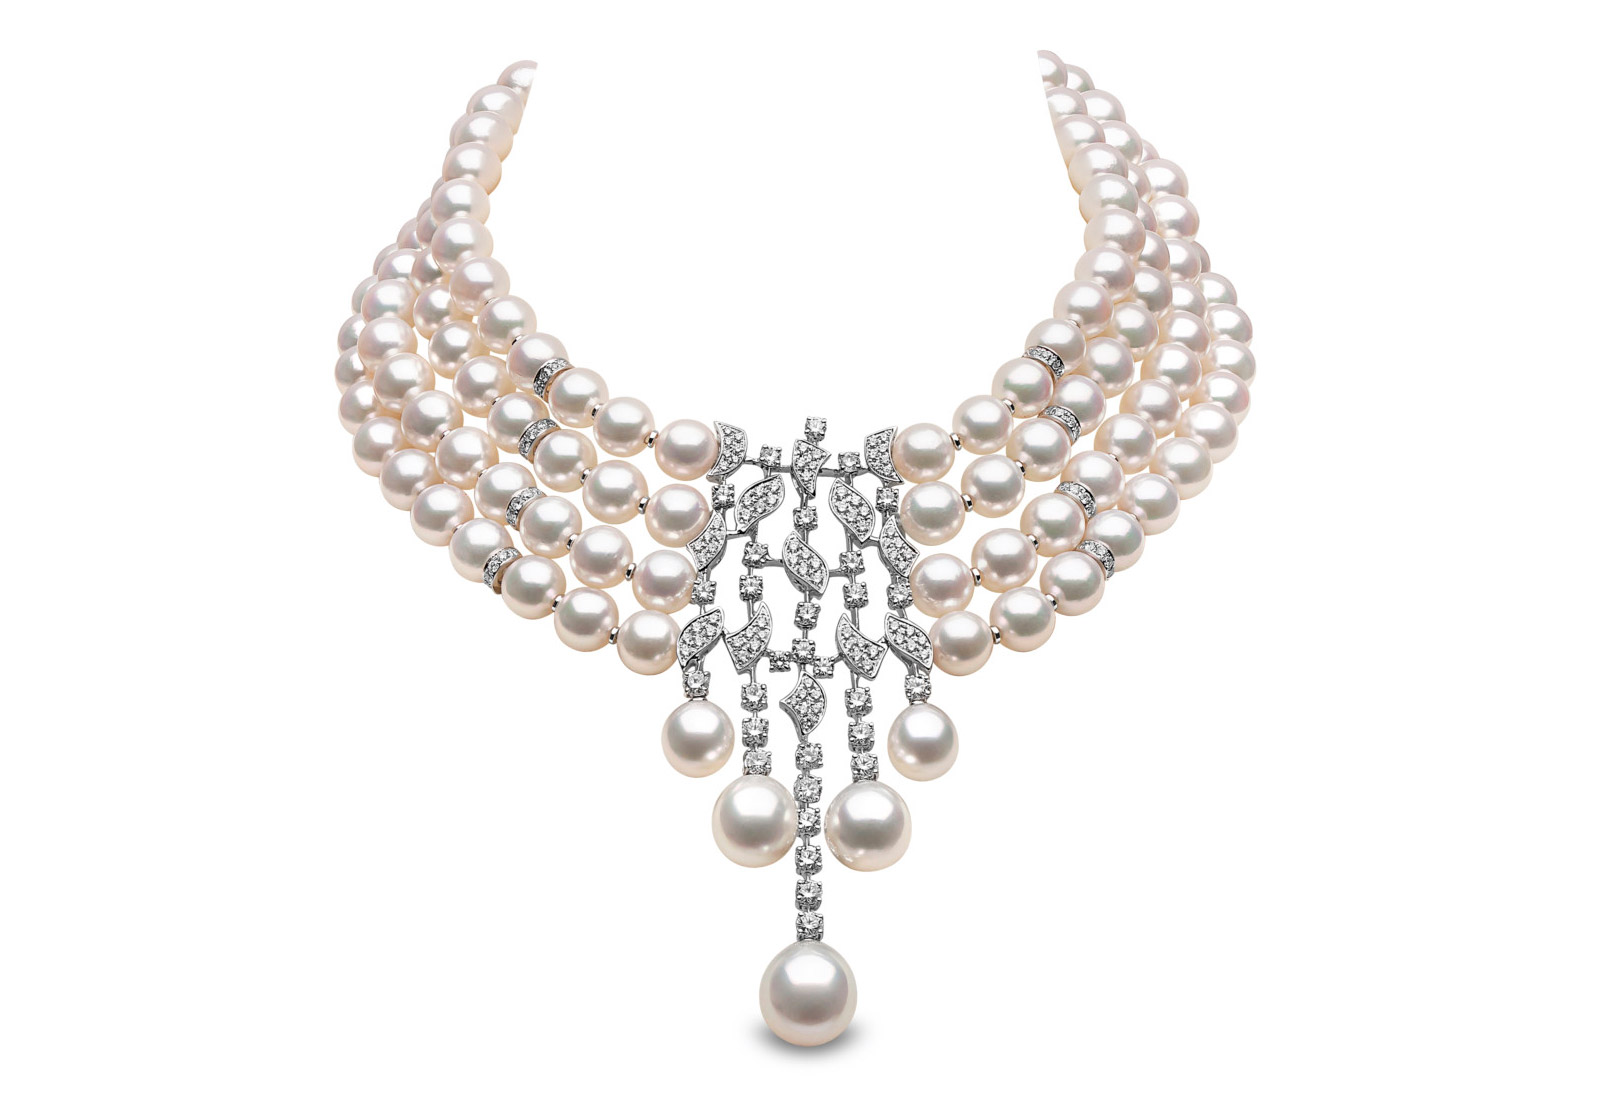 Yoko London chocker necklace with South Sea pearls and diamonds